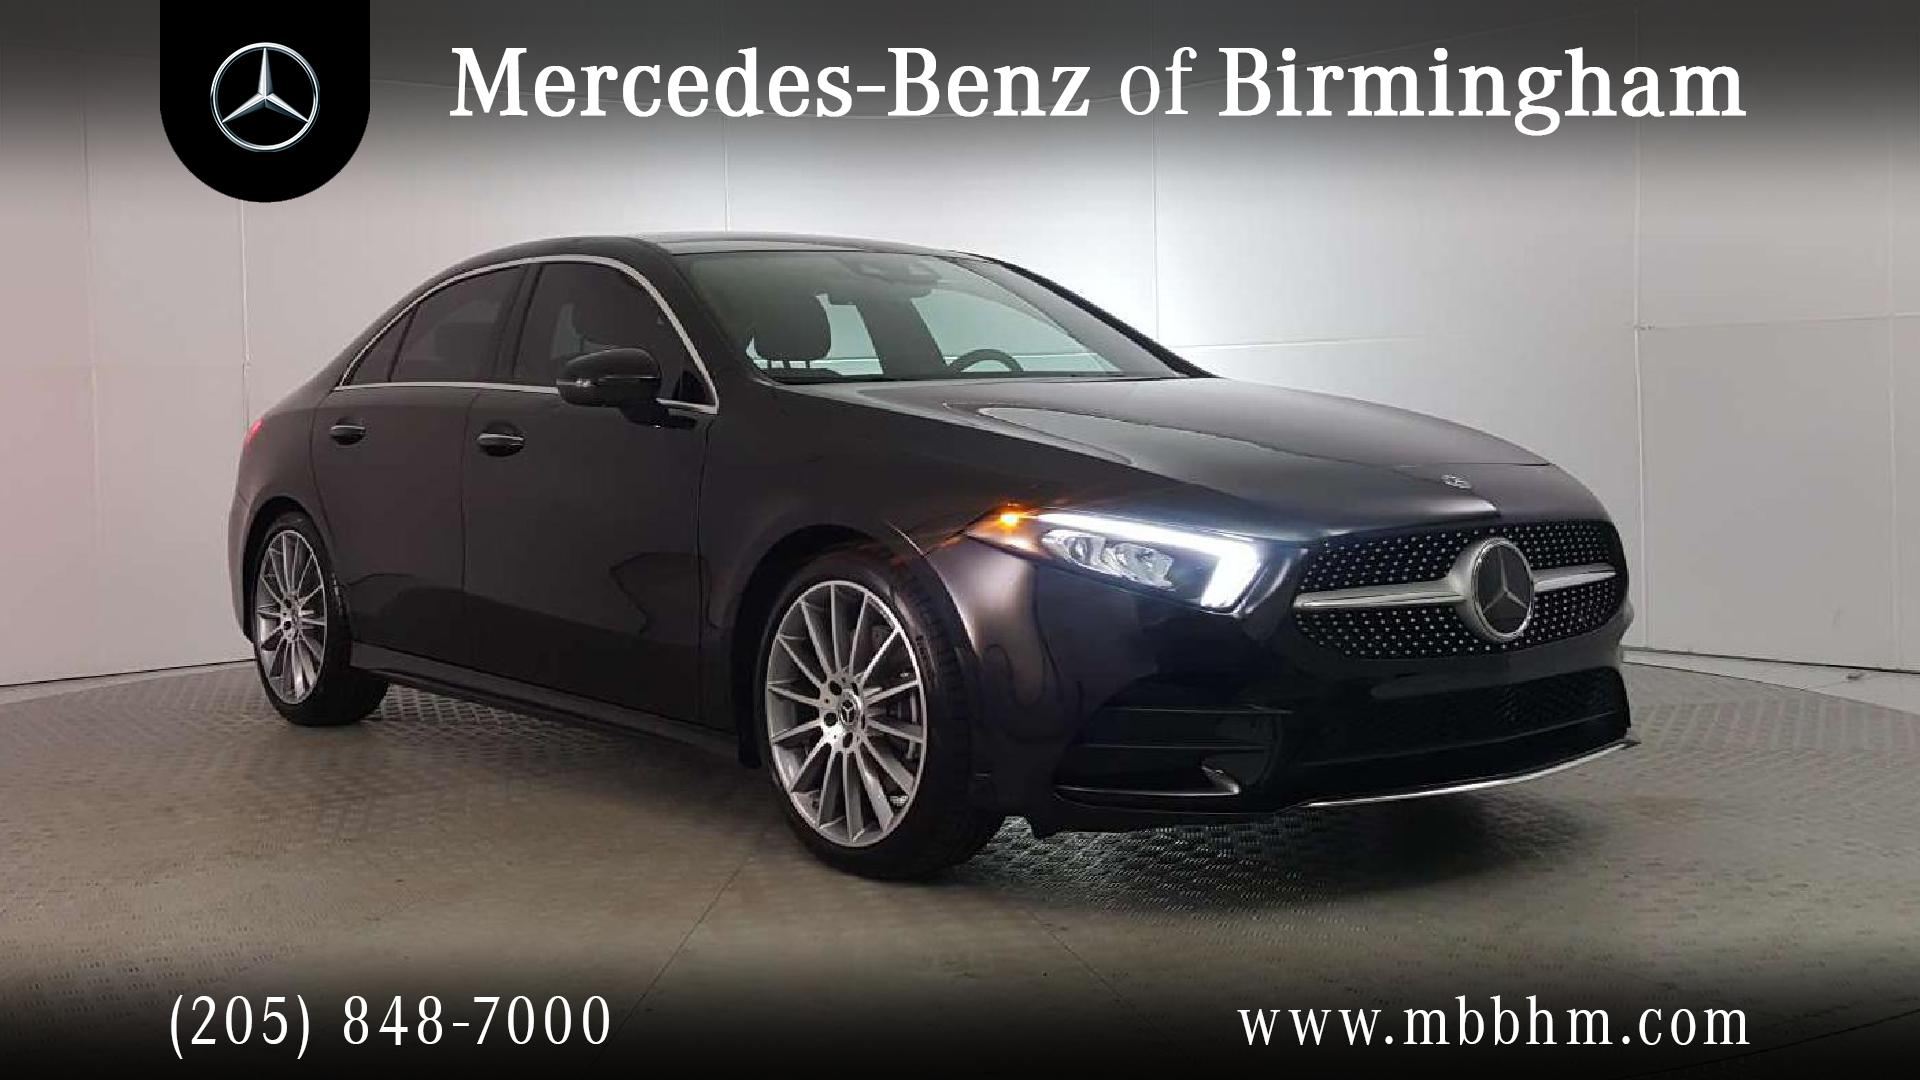 Pre Owned Inventory >> Pre Owned Inventory Hoover Campus Mercedes Benz Of Birmingham